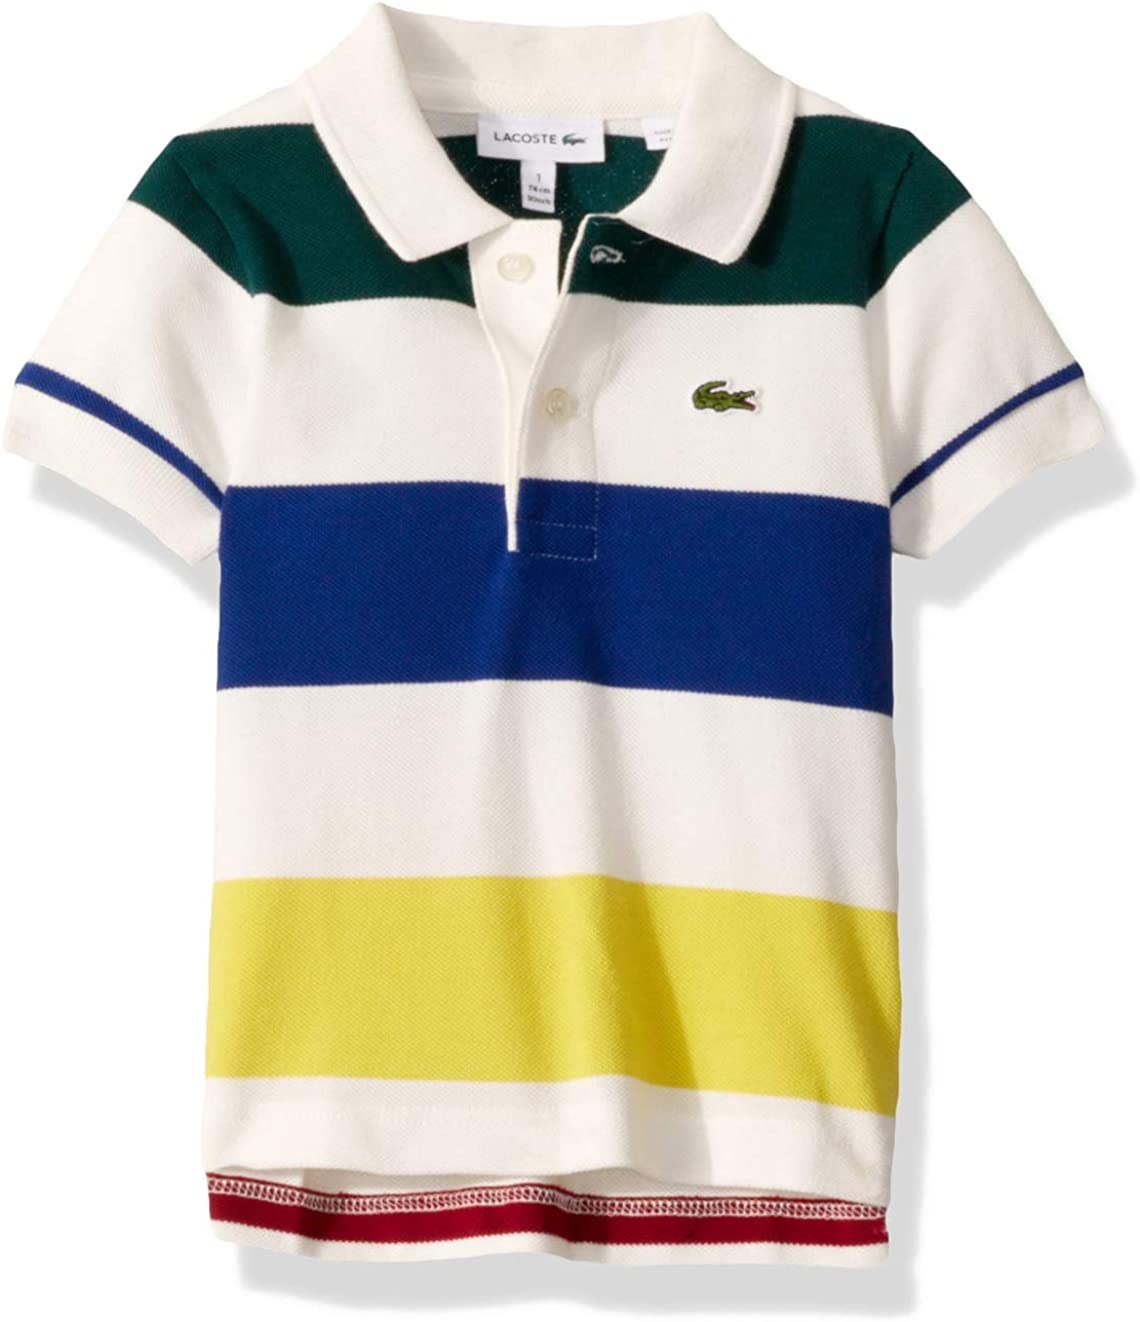 Lacoste Boys Polo Shirt